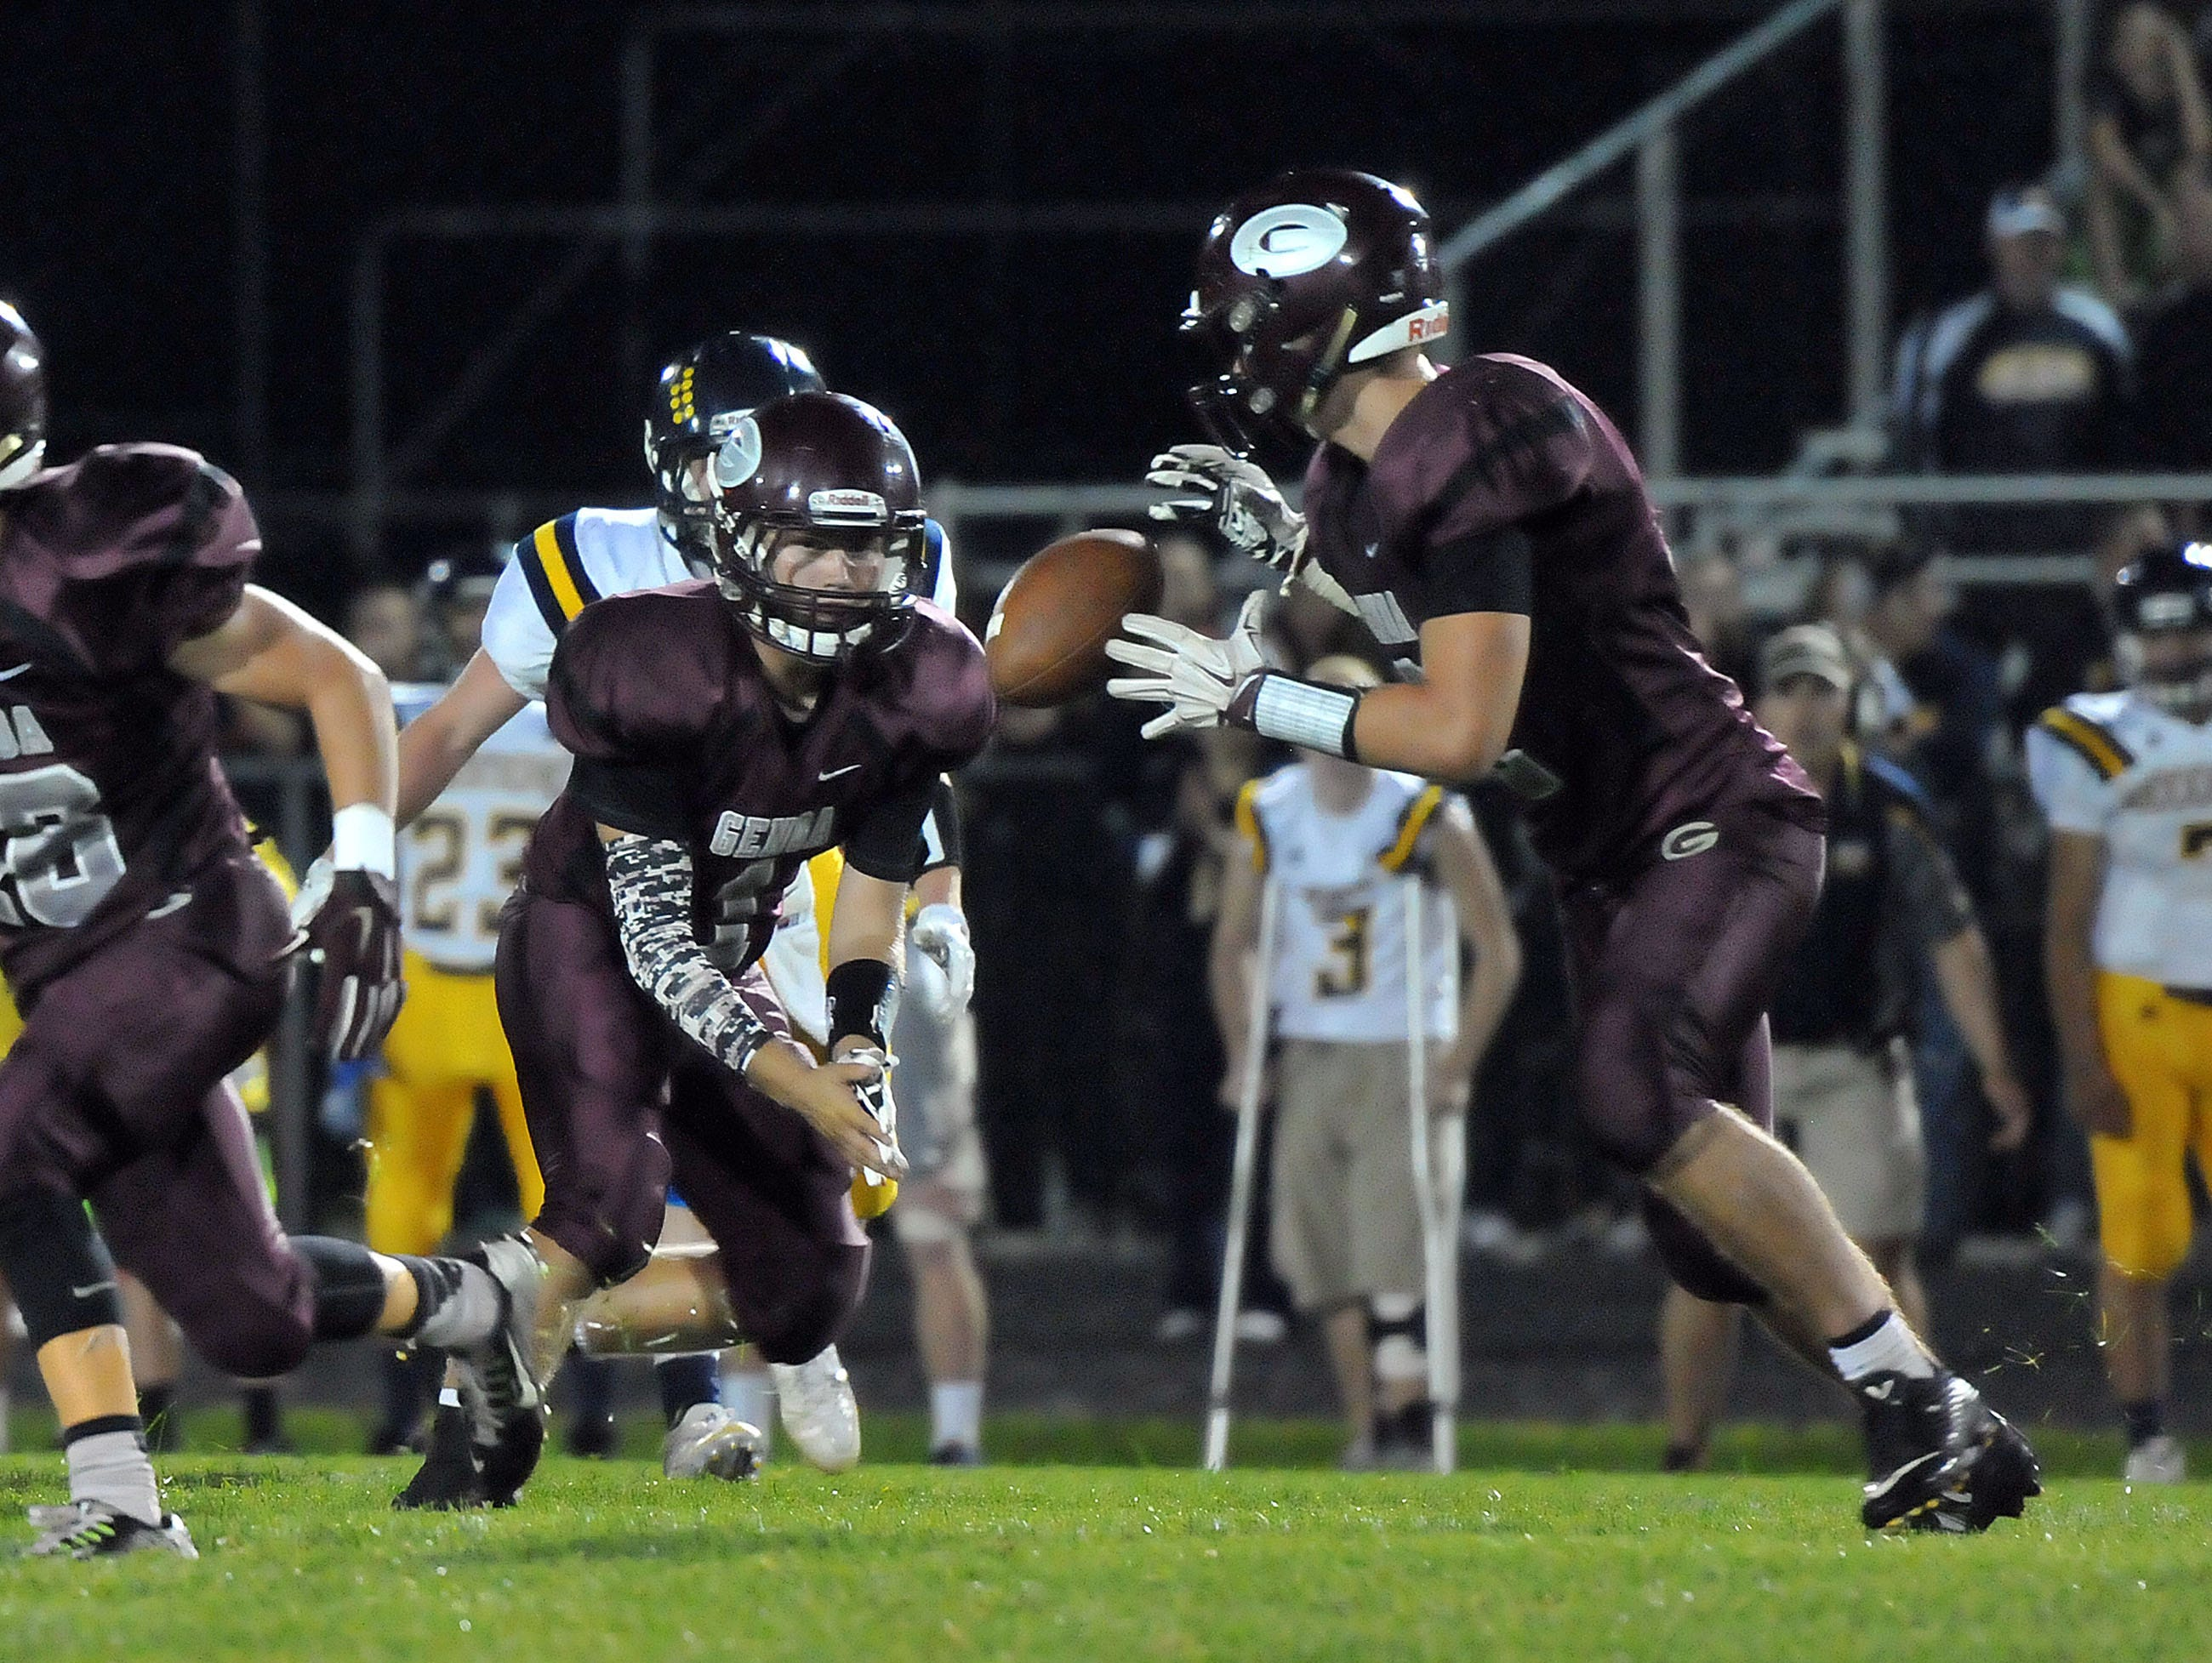 Genoa's Zach Grodi passes the ball to Jacob Plantz during the Comets home game versus Woodmore on Friday night.